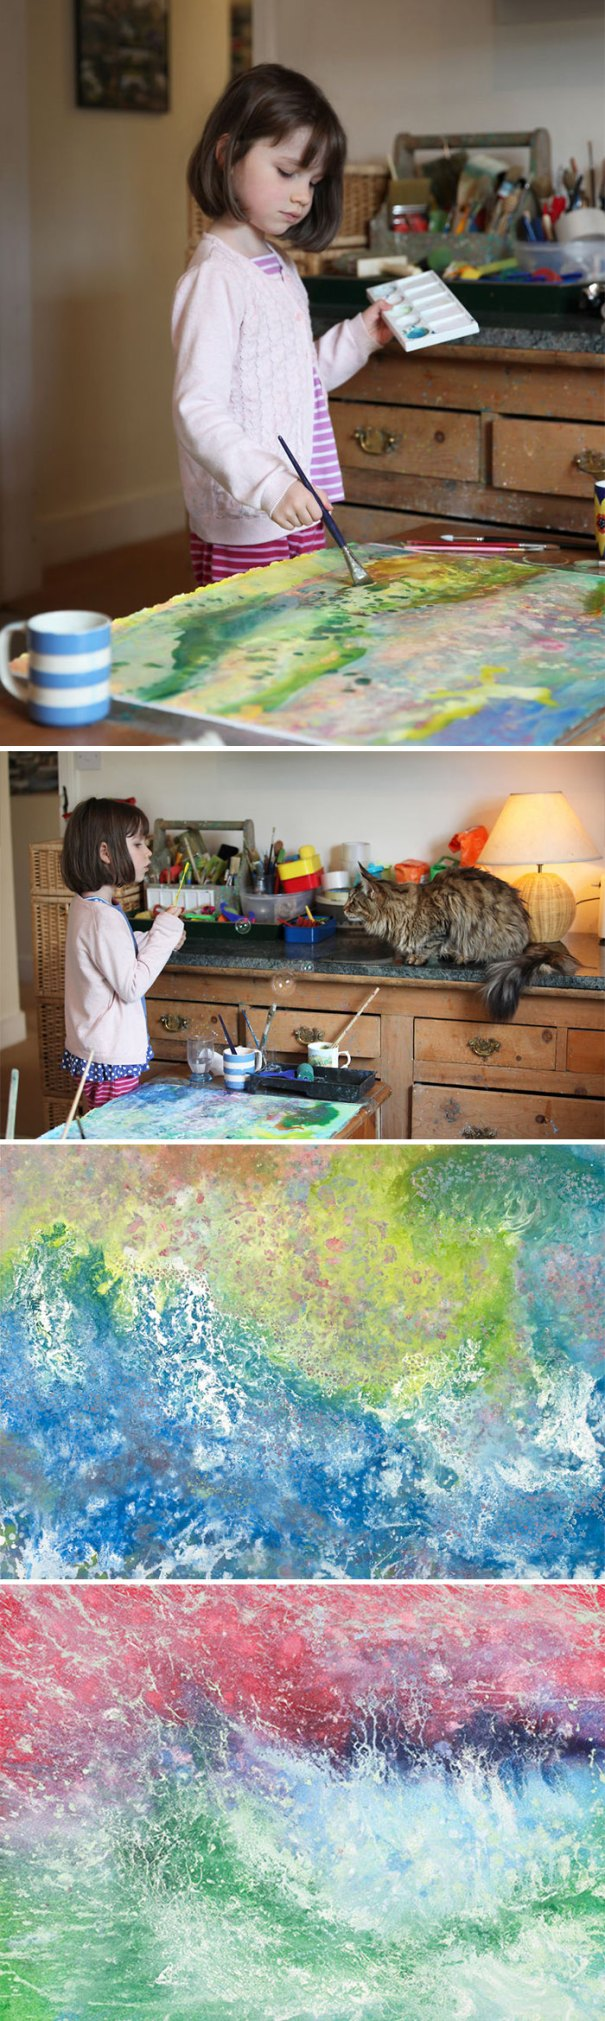 Along With Speech Therapy, Iris Grace's, Who Has Autism, Parents Introduced Her To Painting, Which Is When They Discovered Her Amazing Talent